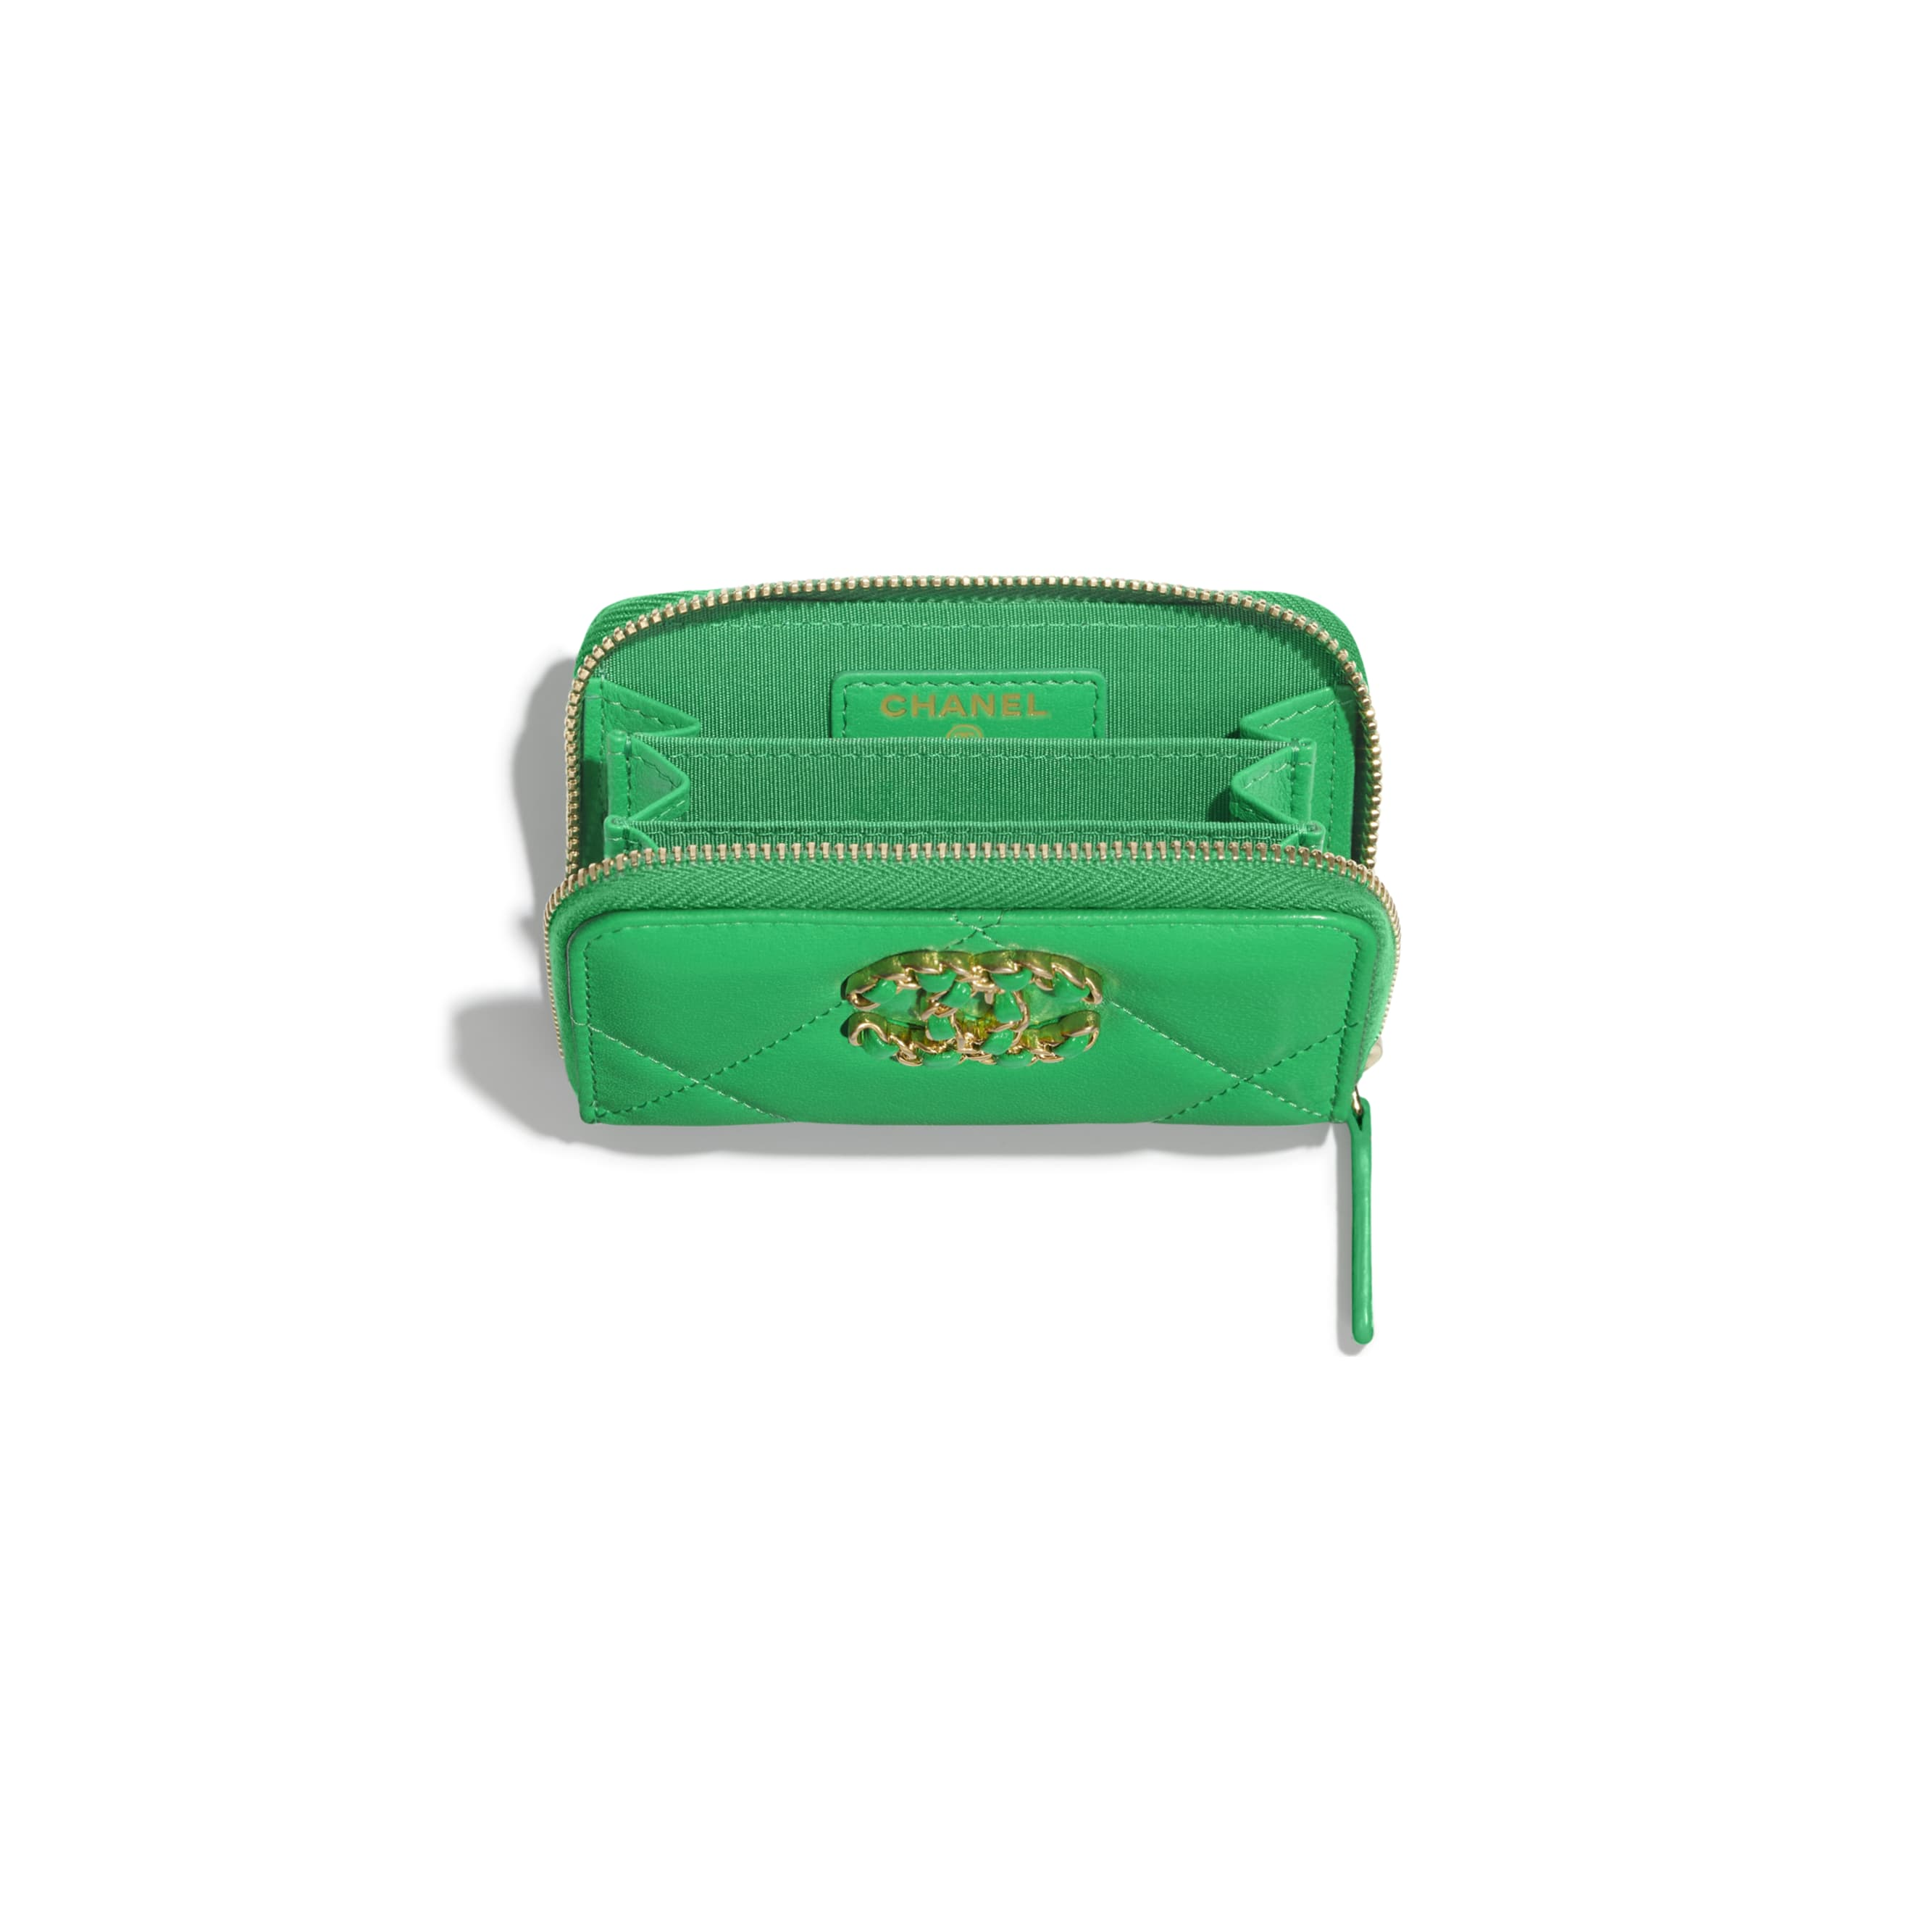 CHANEL 19 Zipped Coin Purse - Green - Lambskin, Gold-Tone, Silver-Tone & Ruthenium-Finish Metal - Other view - see standard sized version